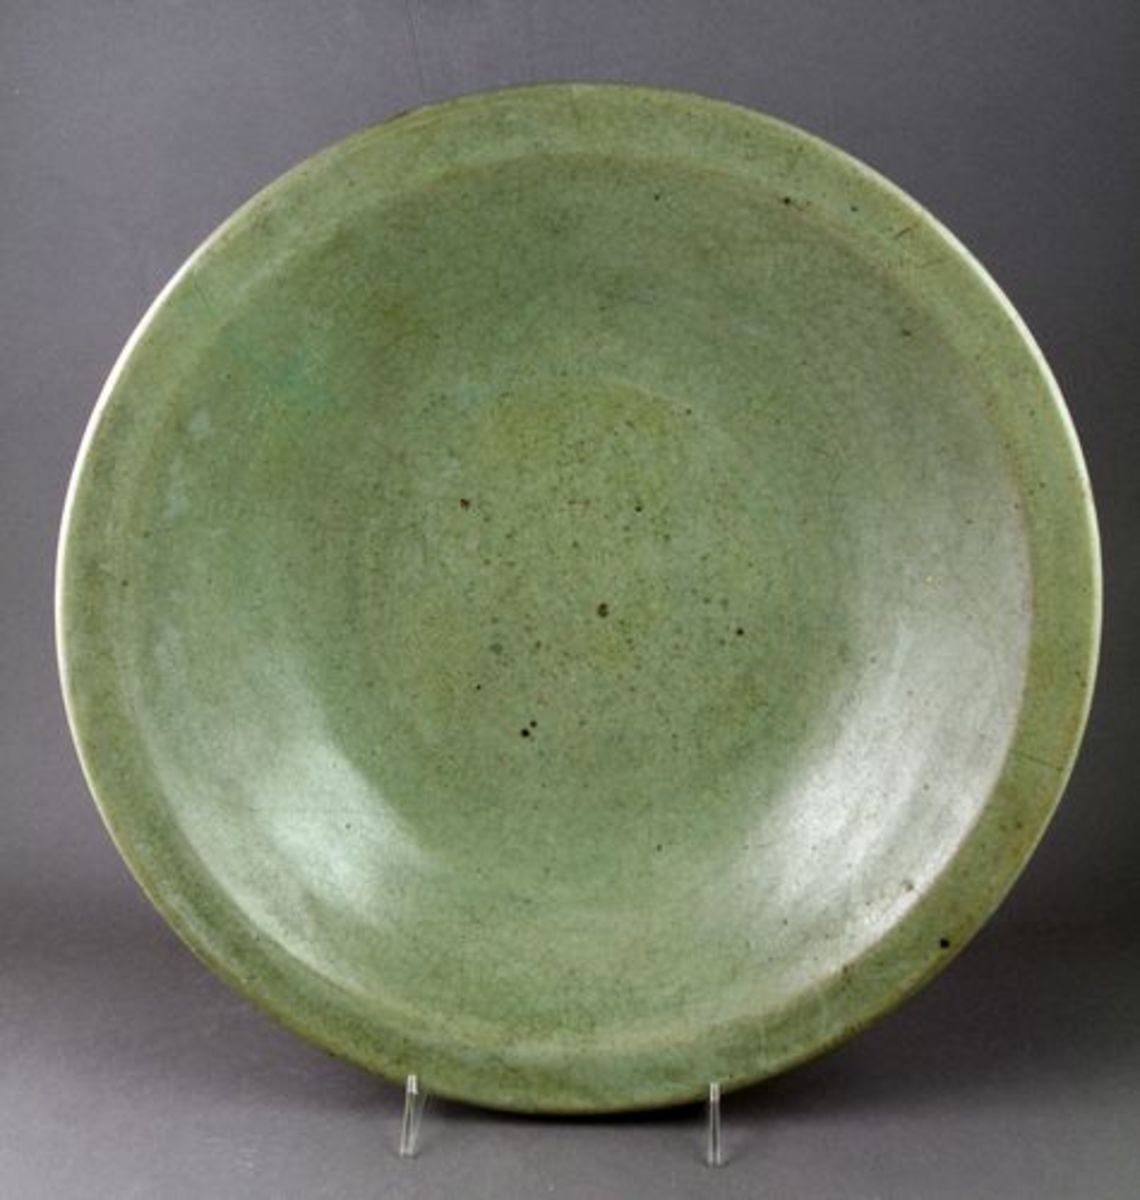 "An Analysis of Katha Pollitt's ""A Chinese Bowl"""